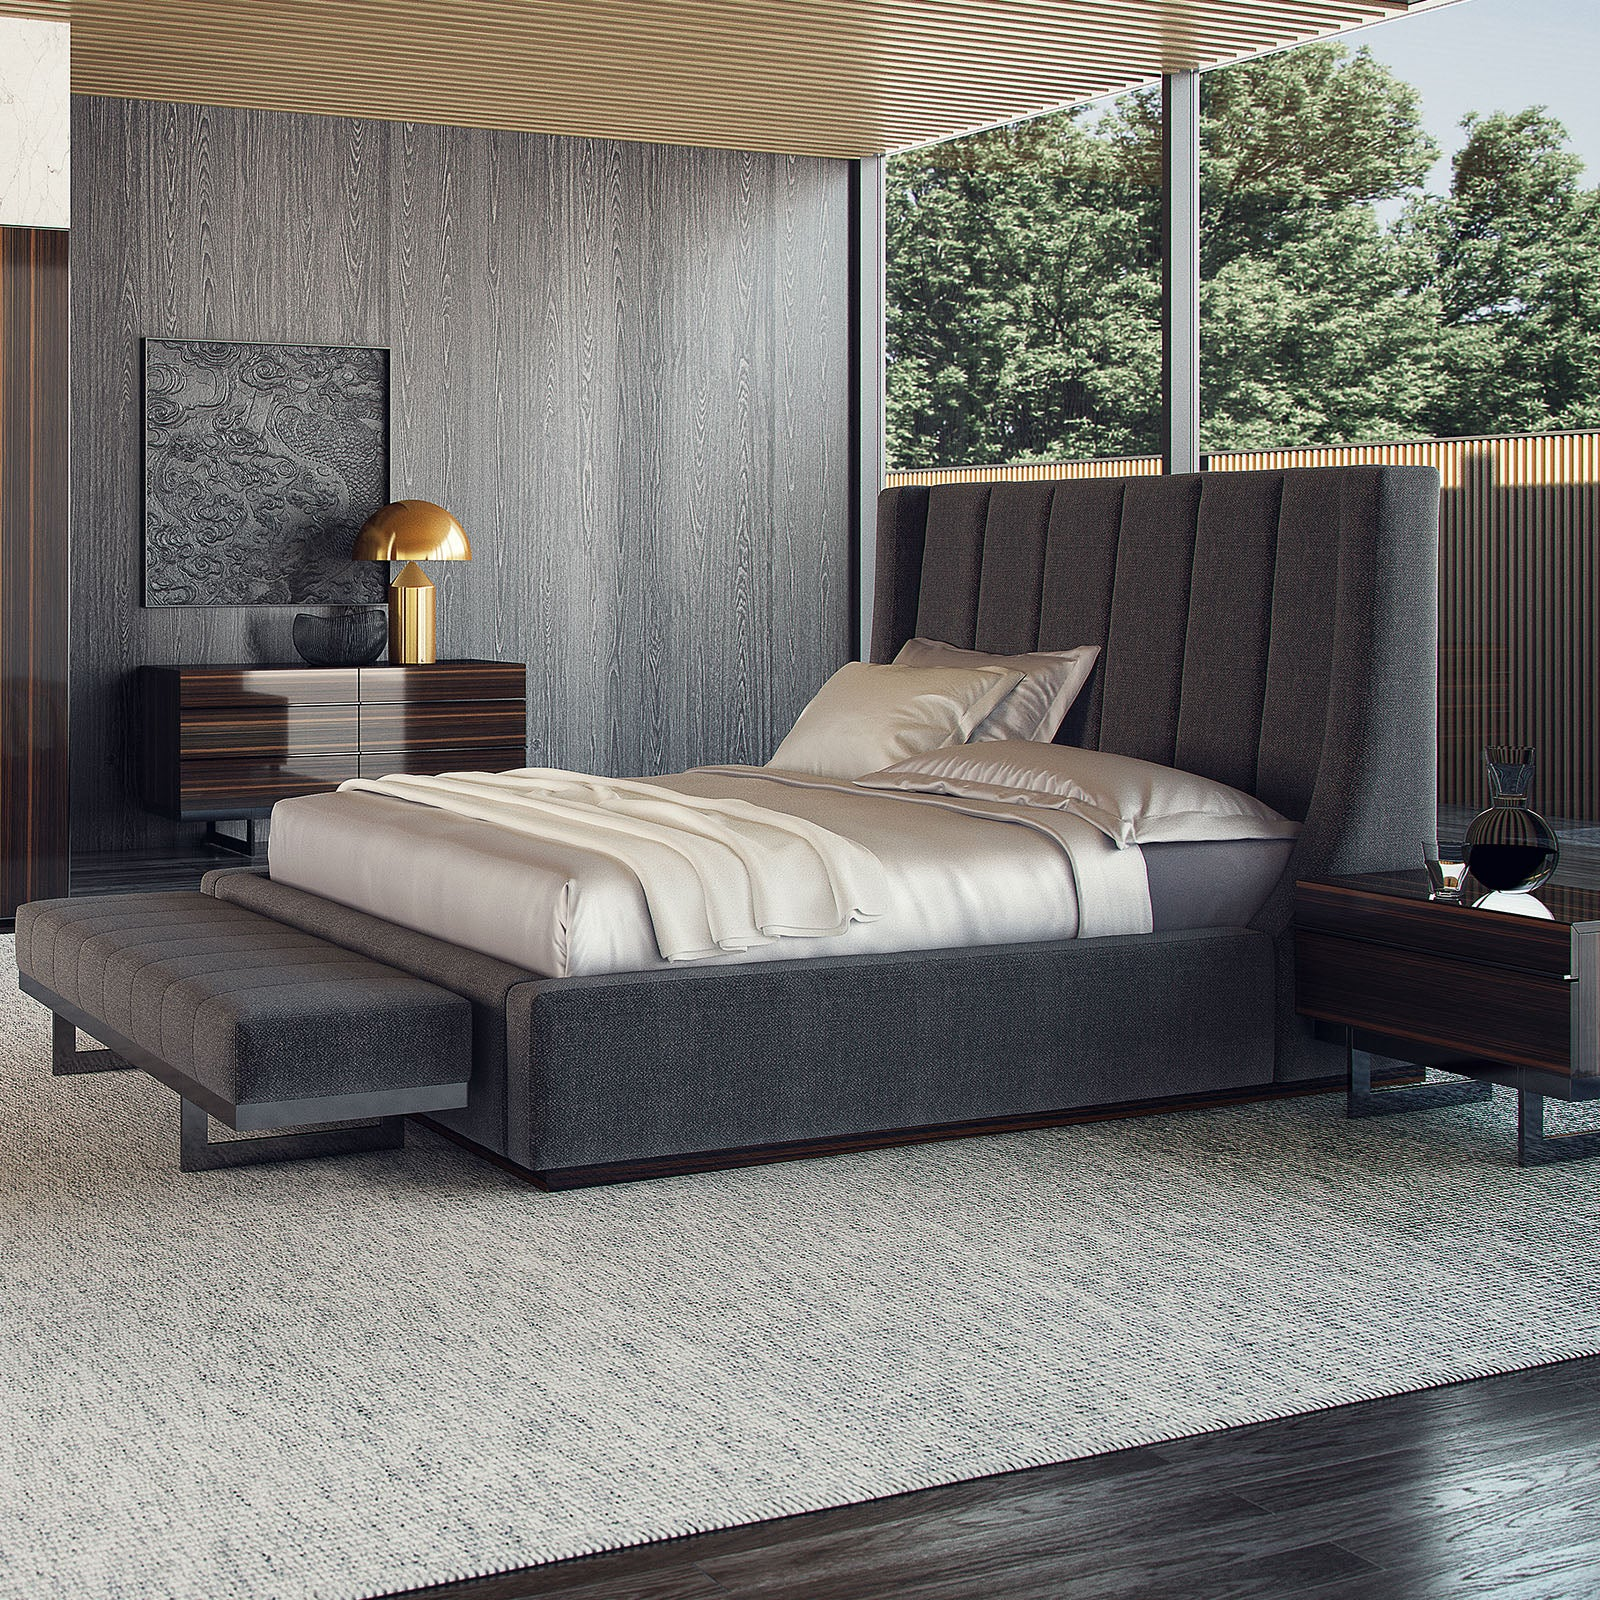 Prada Elegant  Bedroom with bench  ELEGANT003